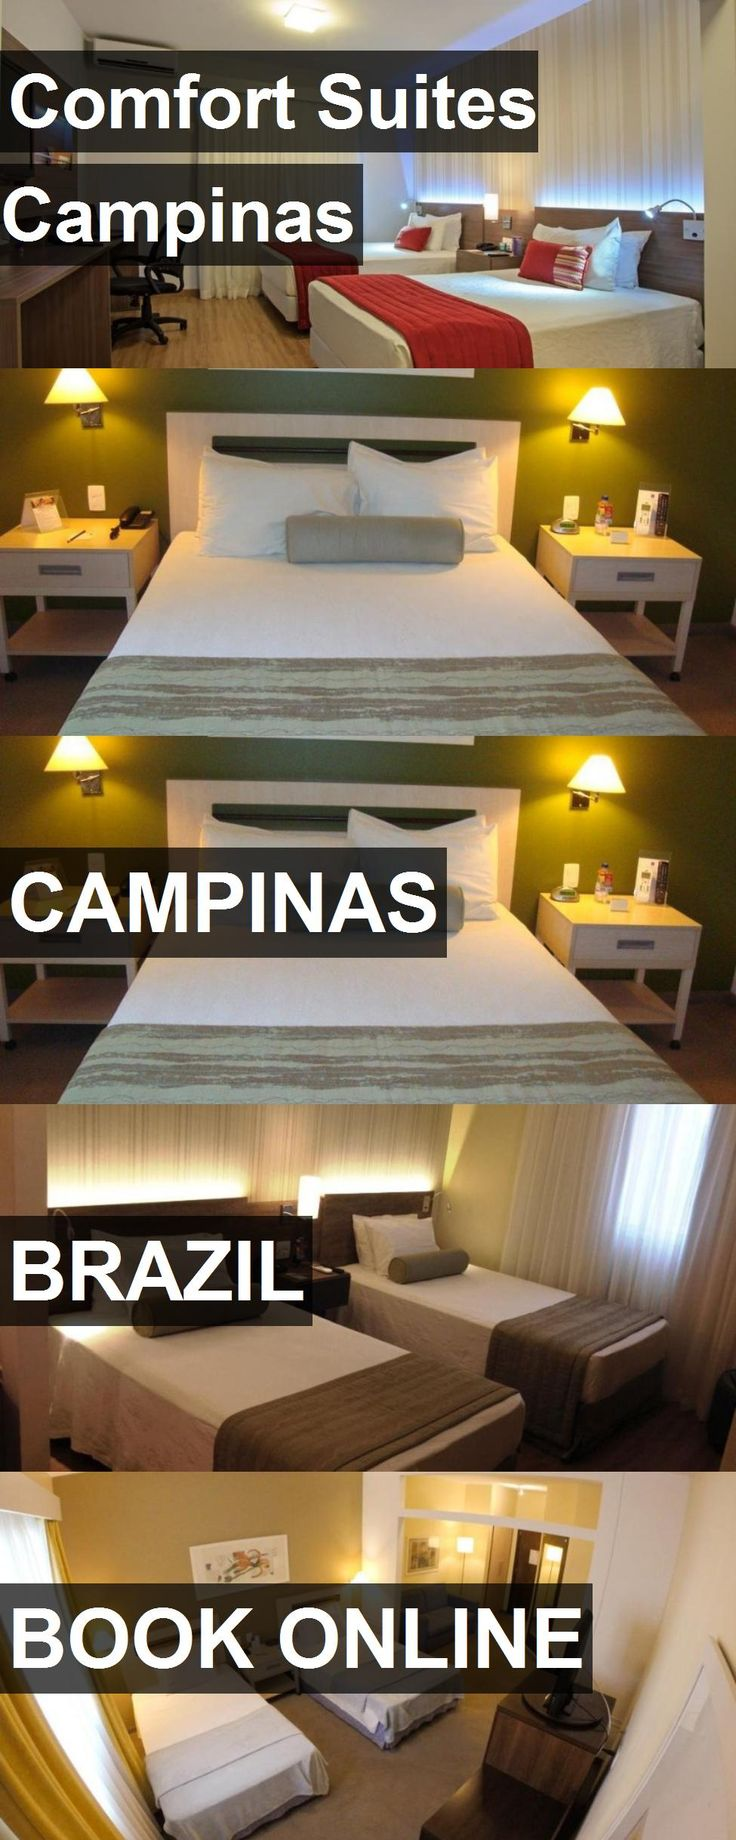 Hotel Comfort Suites Campinas in Campinas, Brazil. For more information, photos, reviews and best prices please follow the link. #Brazil #Campinas #travel #vacation #hotel